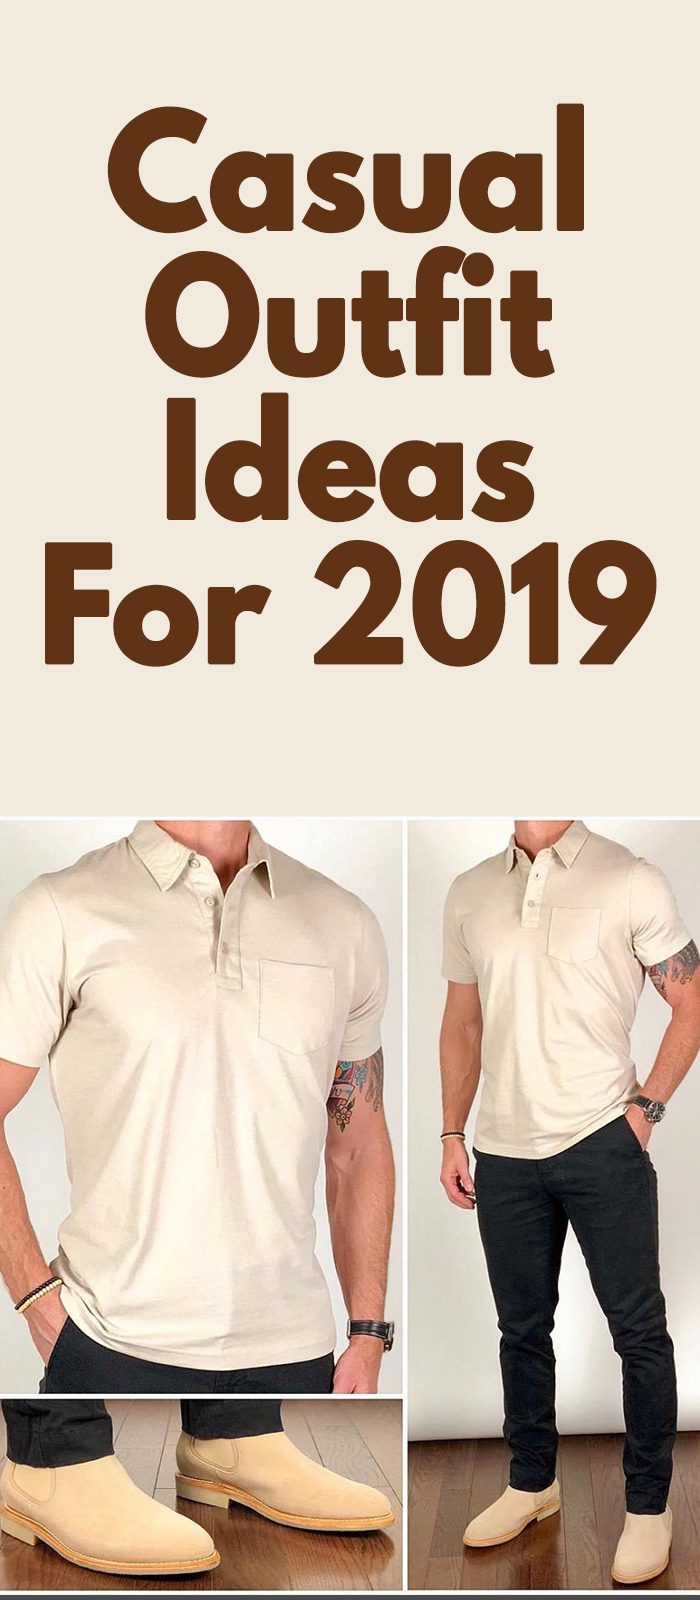 Casual Outfit Ideas For 2019